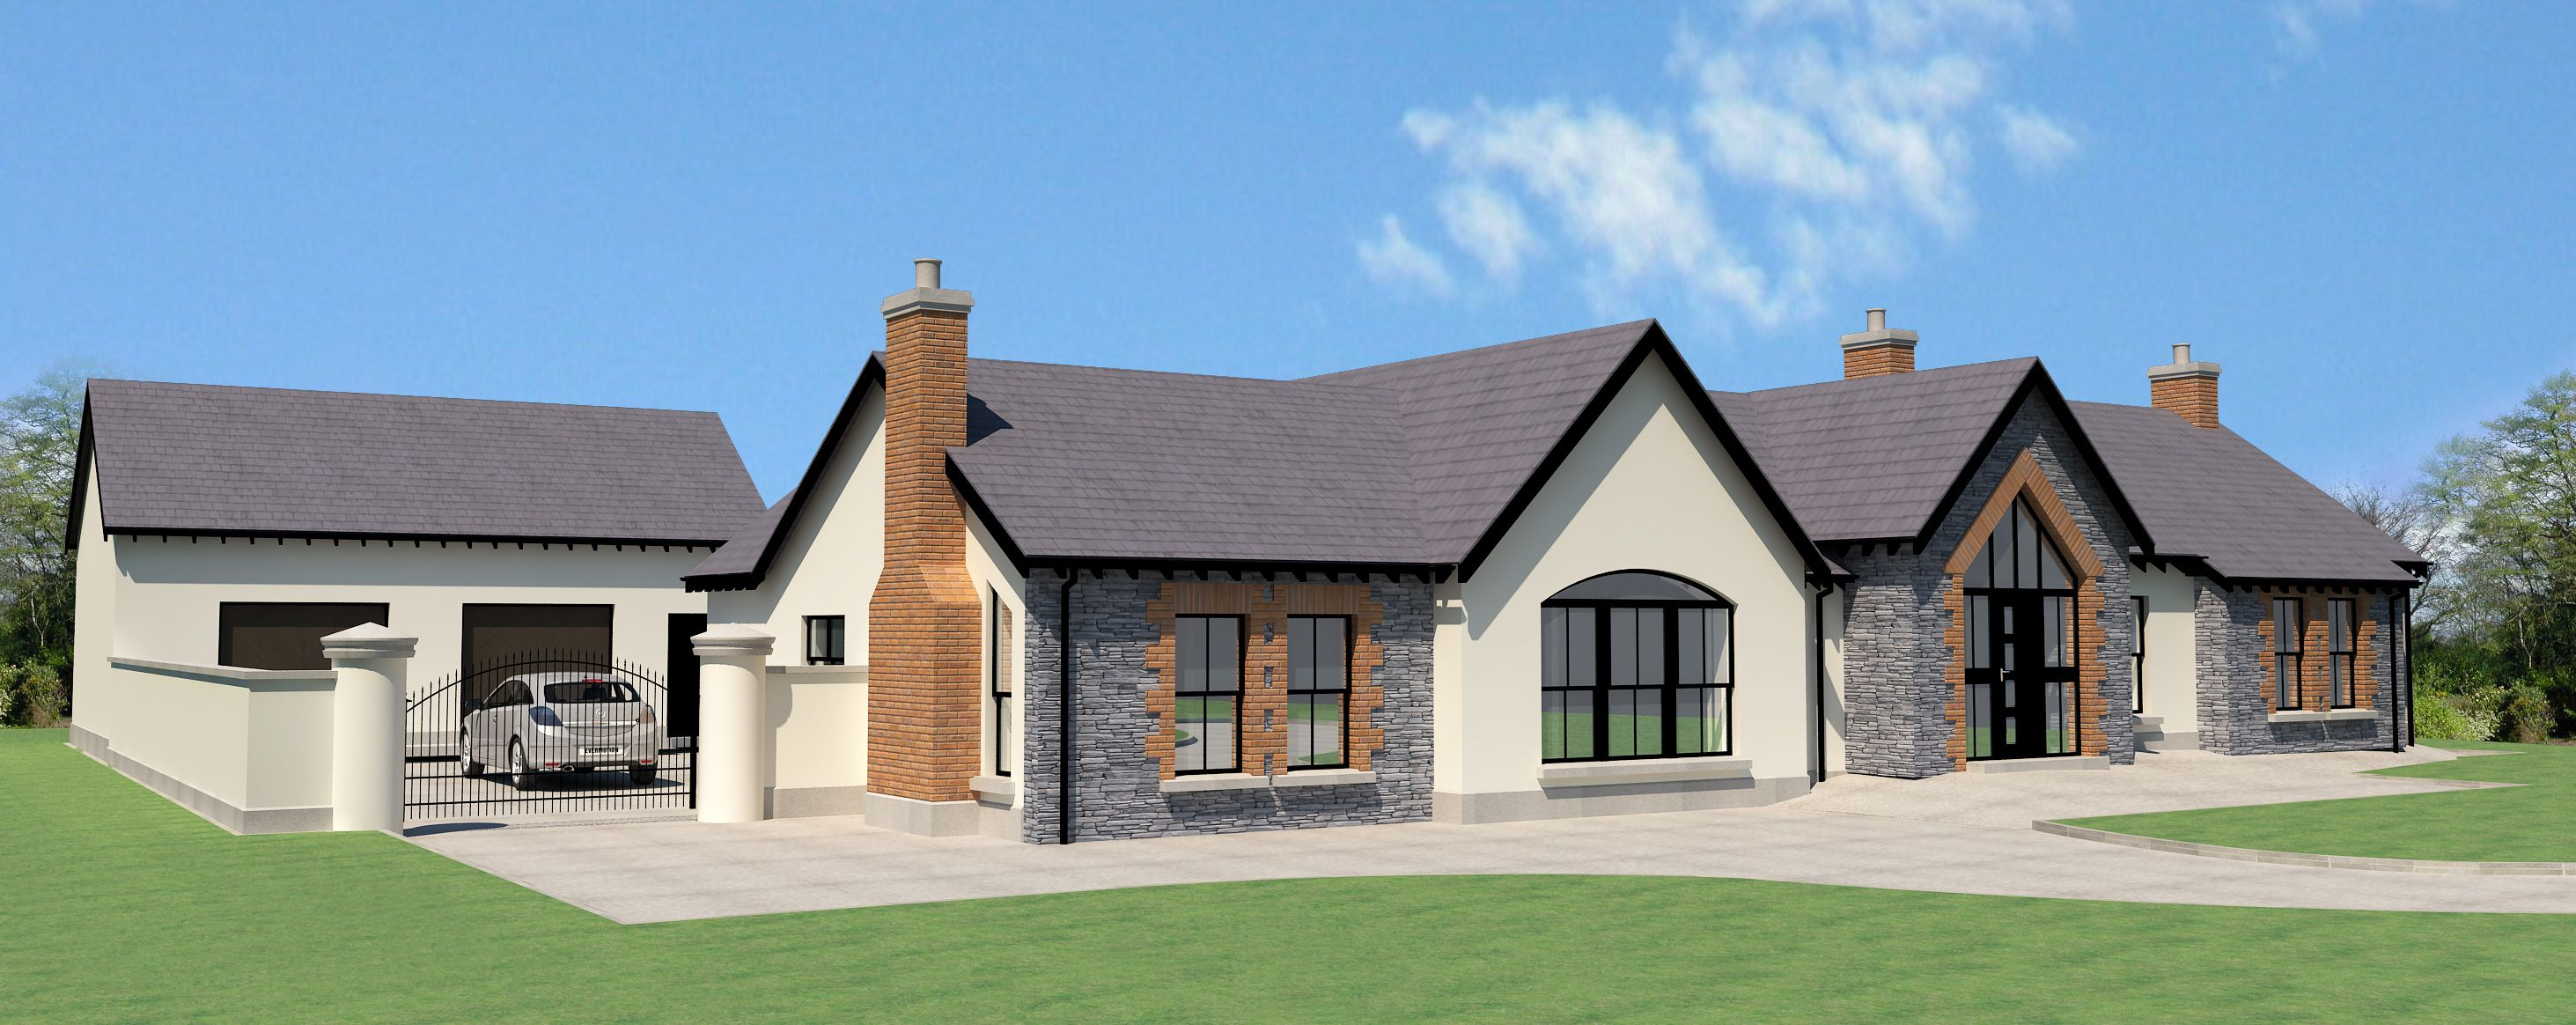 Bungalow House Plans Ireland Carribean House Plans 4 Outstanding